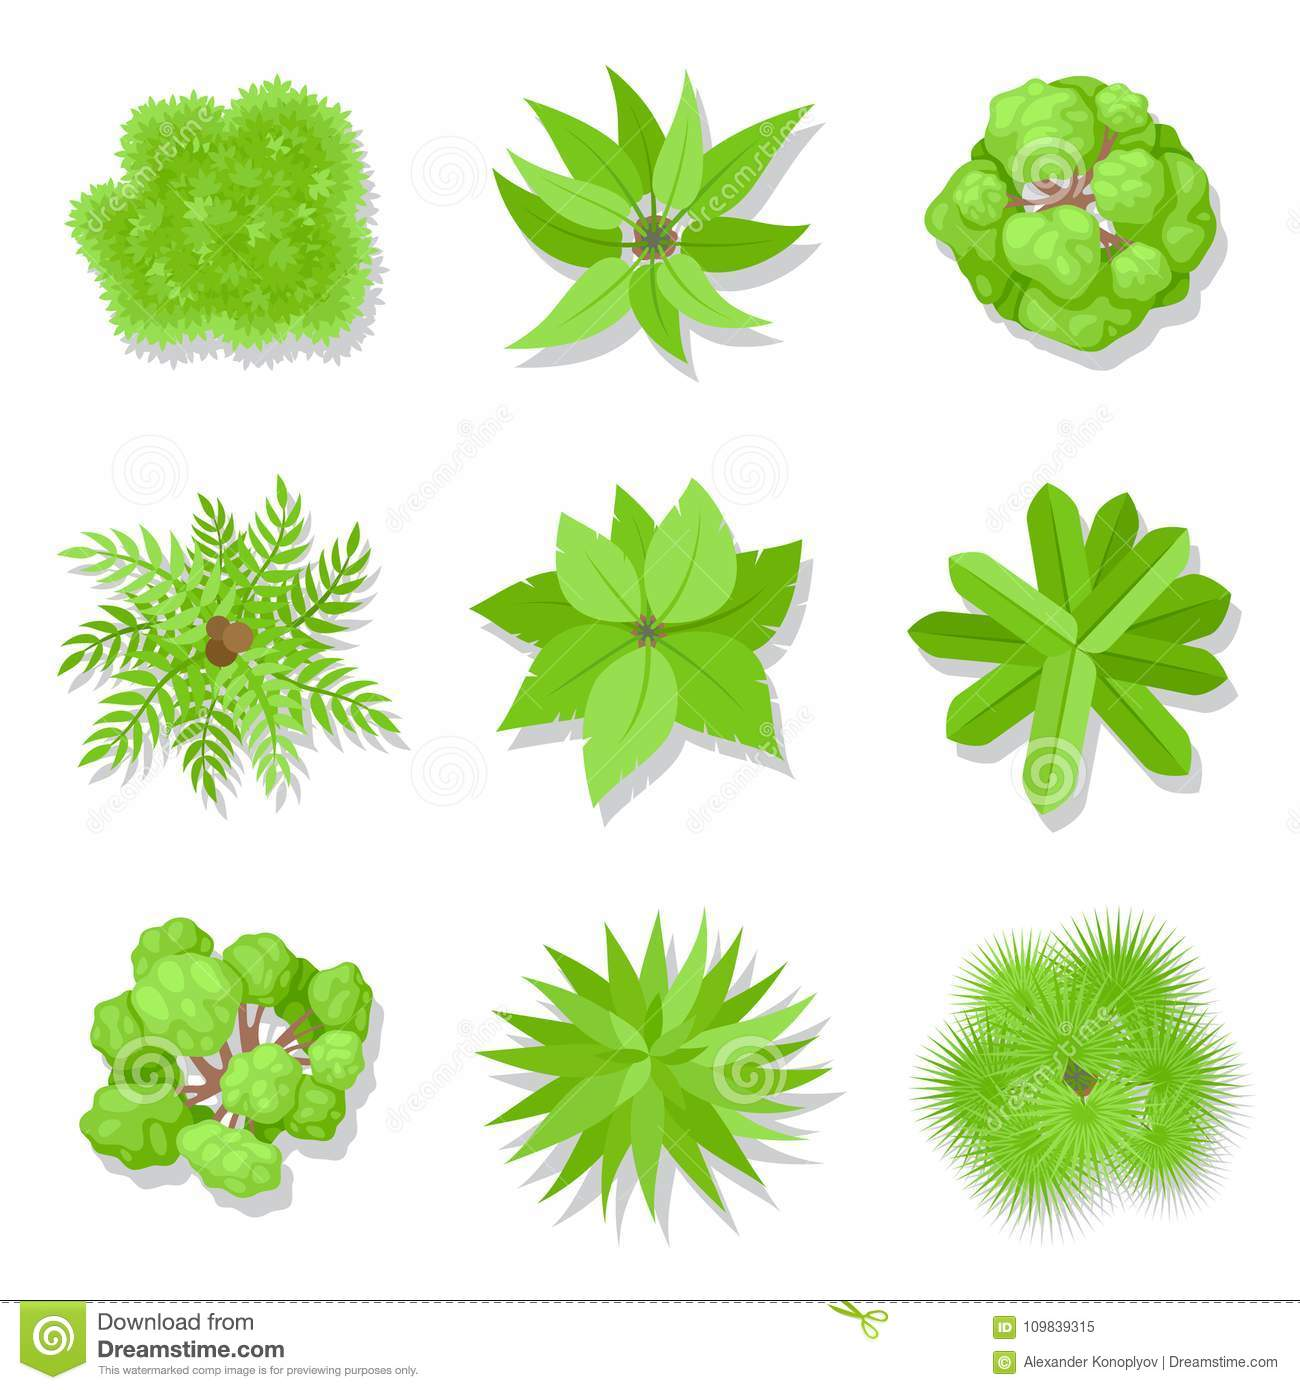 Trees Top View Stock Vector Illustration Of Cartoon 109839315 To view this model in virtual reality: https www dreamstime com trees top view trees top view green woody plants set branches leaves botany ecology concept vector flat style cartoon image109839315